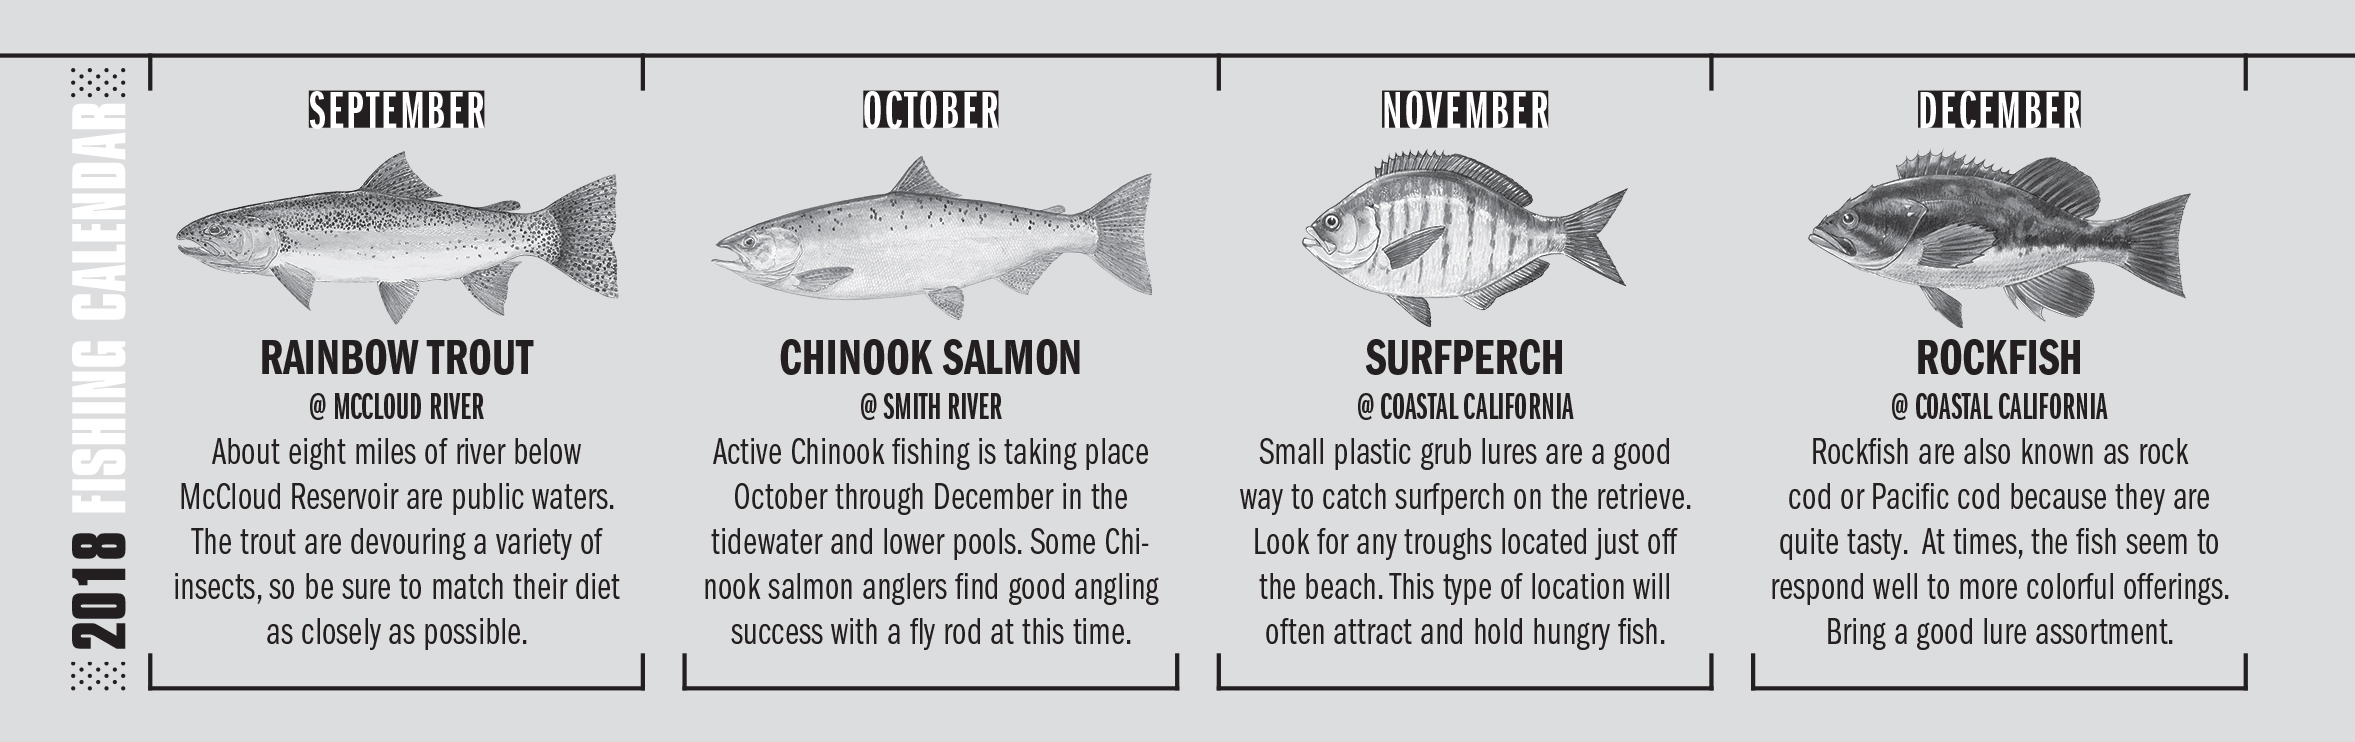 2018 California Fishing Calendar